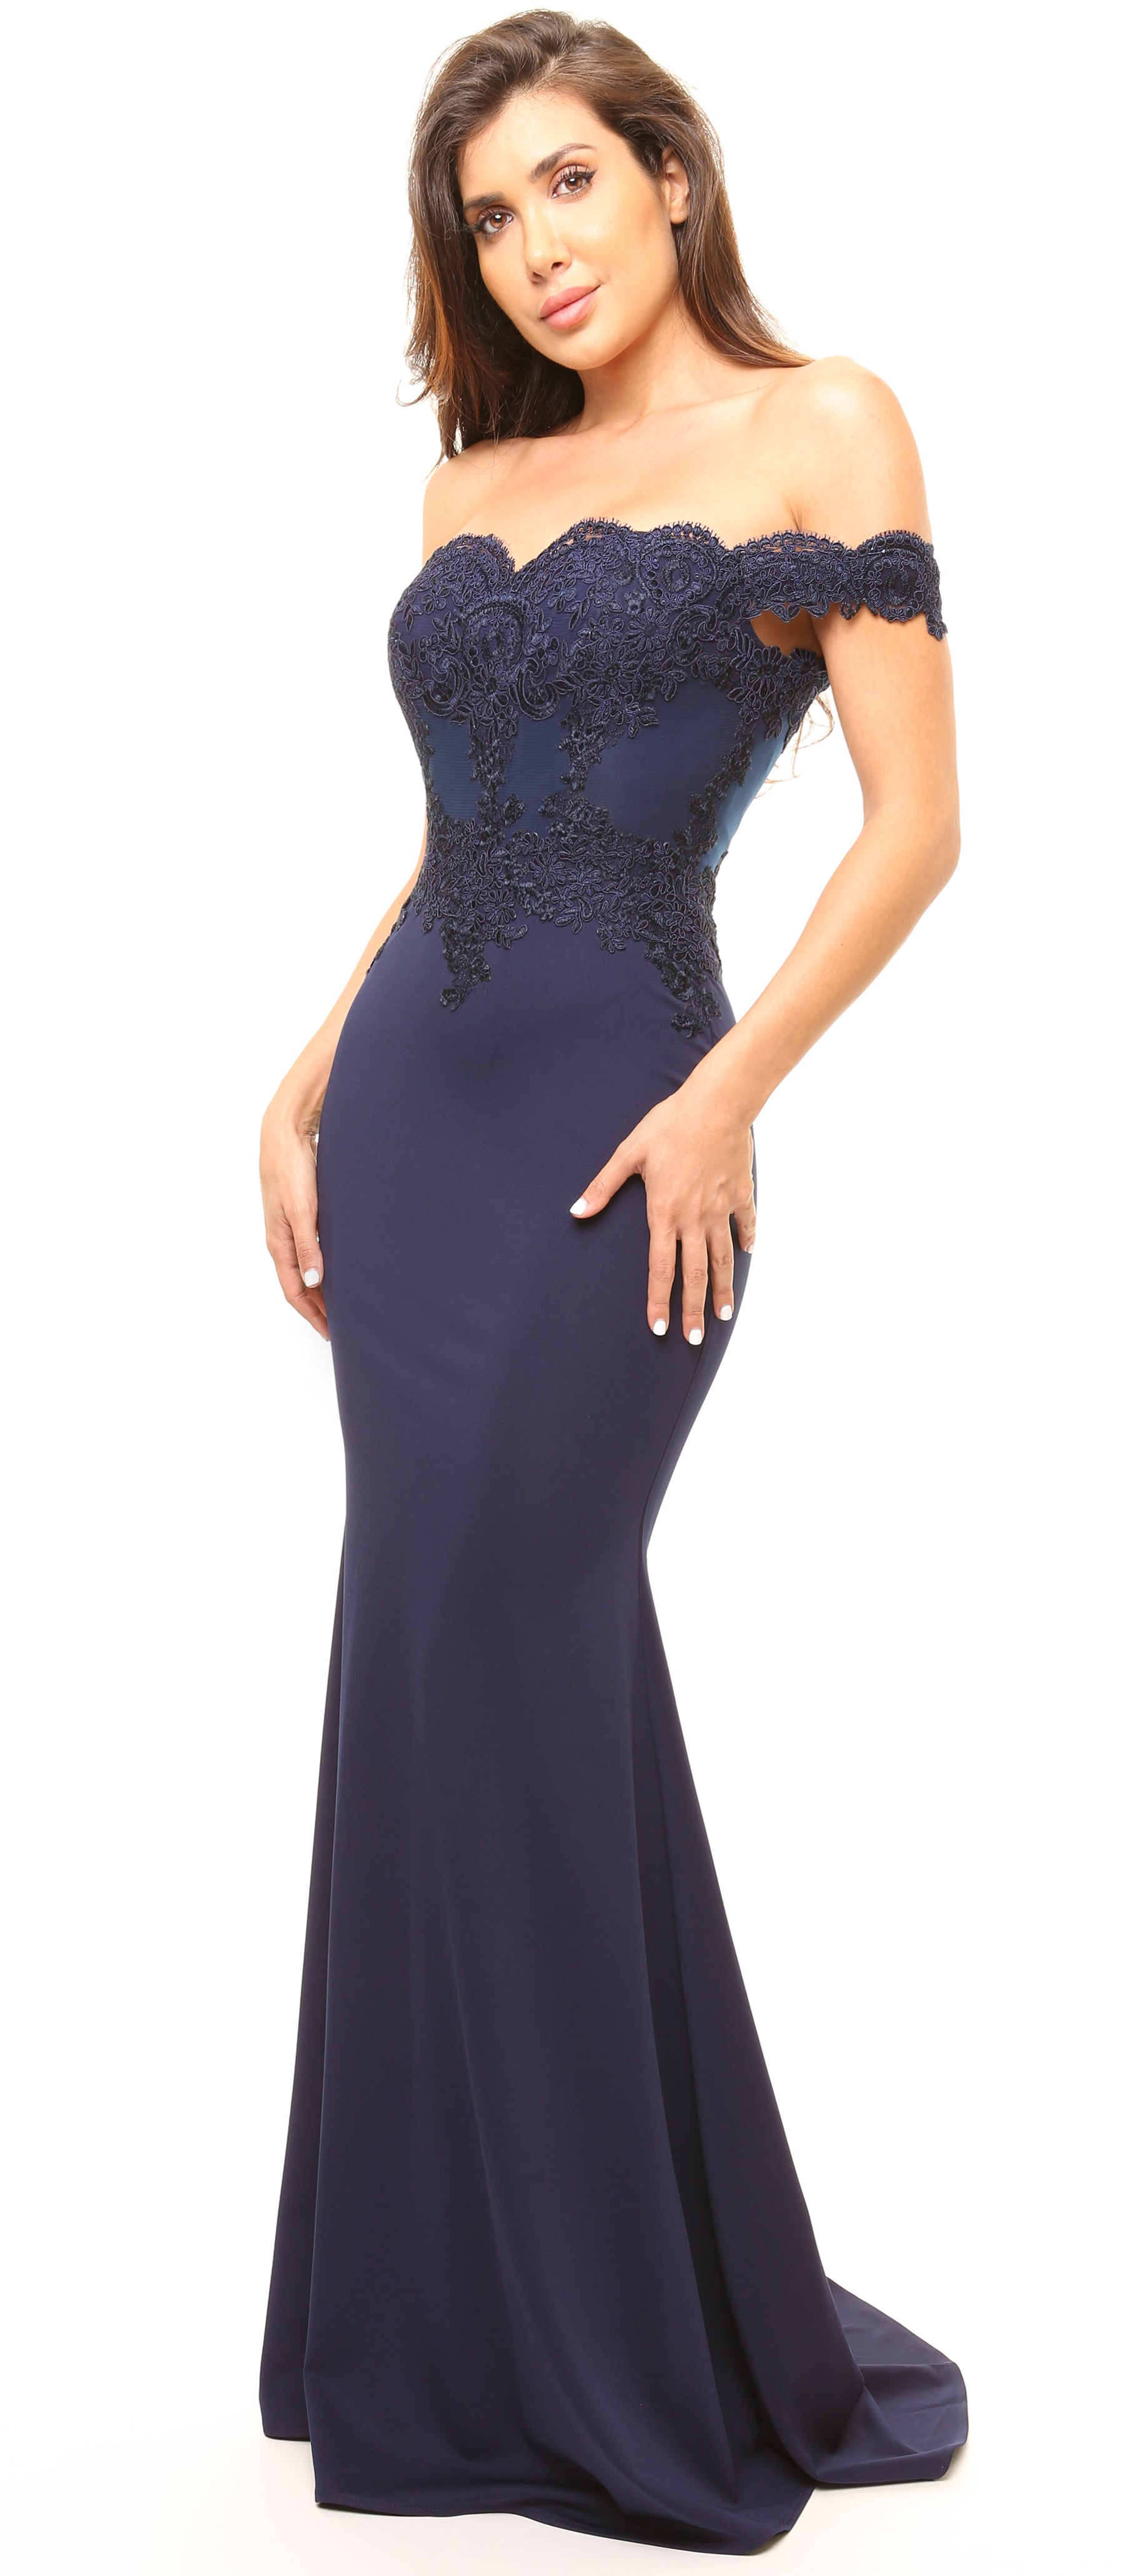 Solaine Navy Off Shoulder Lace Detail Gown Dress